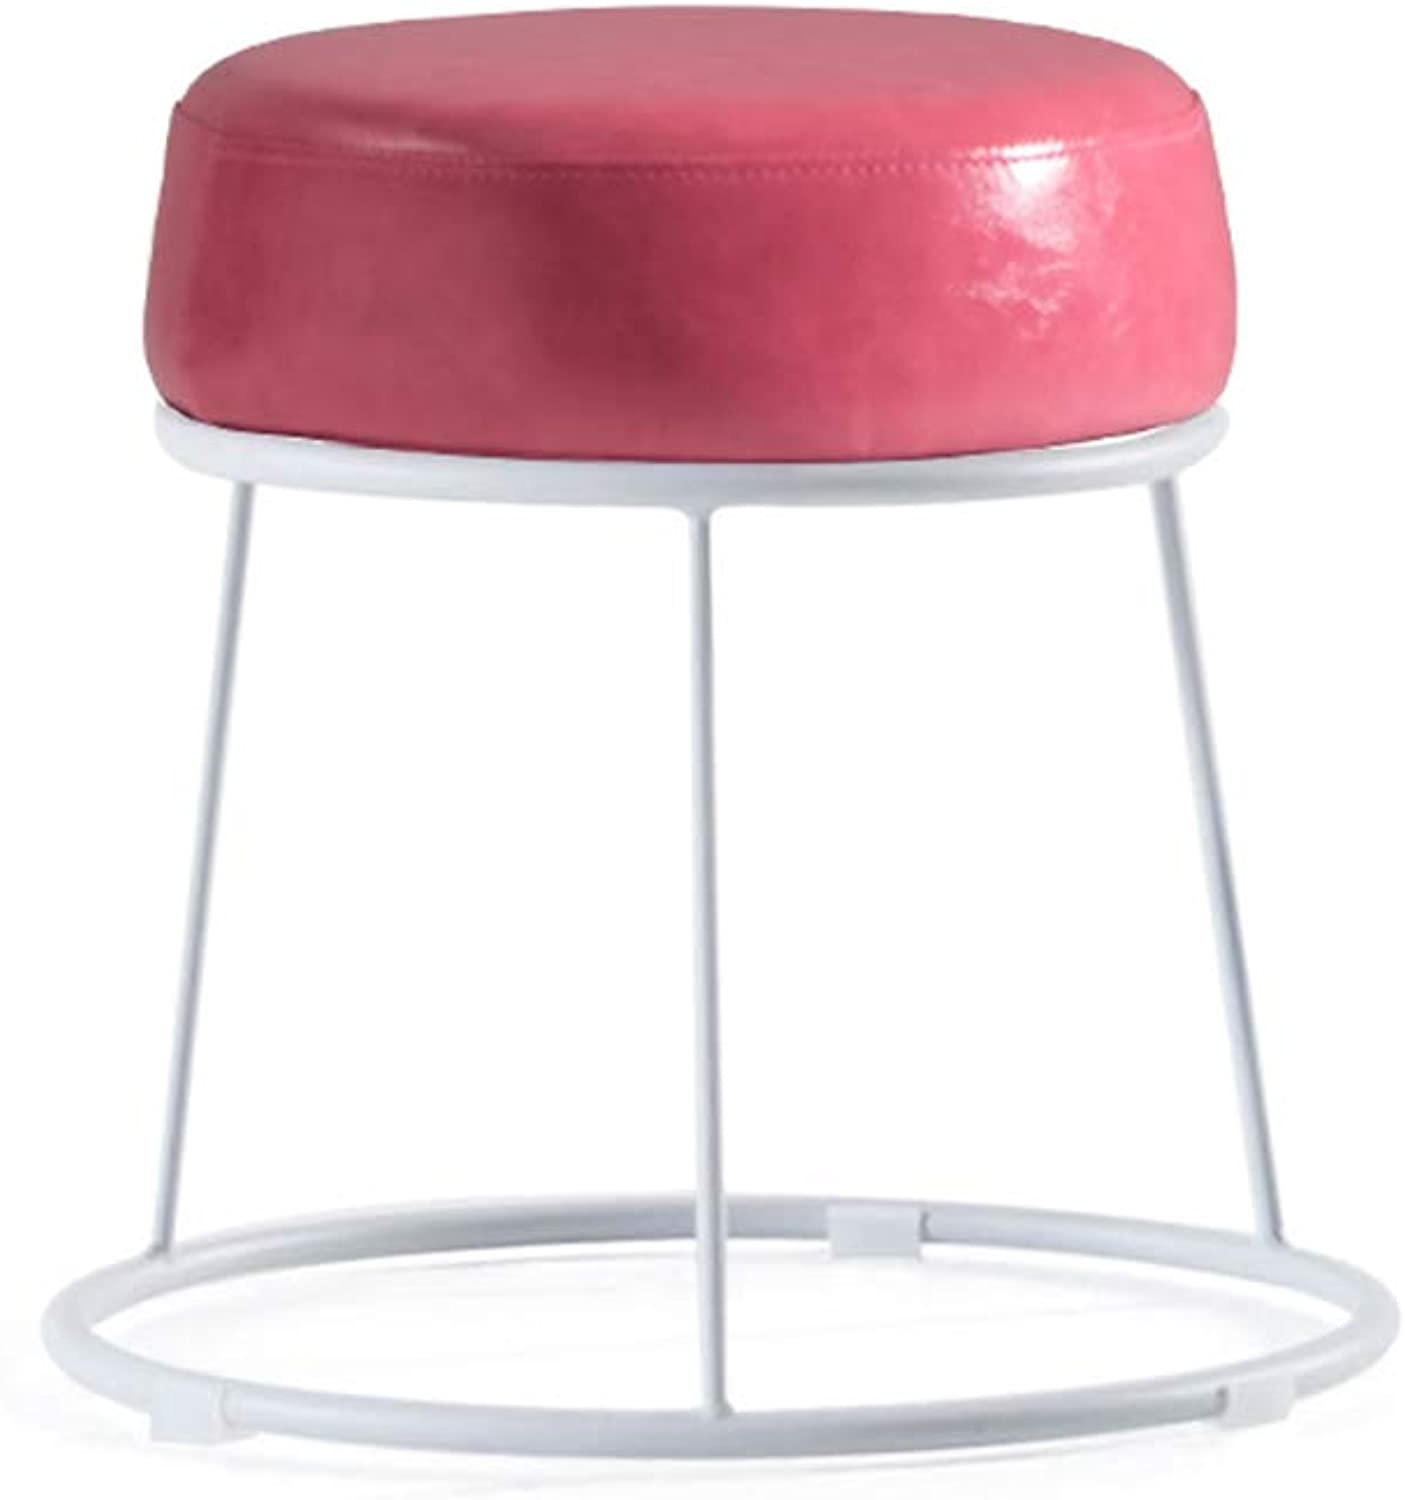 Lazy Small Bench, Nordic Iron stool, Low stool, Soft Surface Thick stool, Home stool, Dressing Bench Bench (color   Pink)